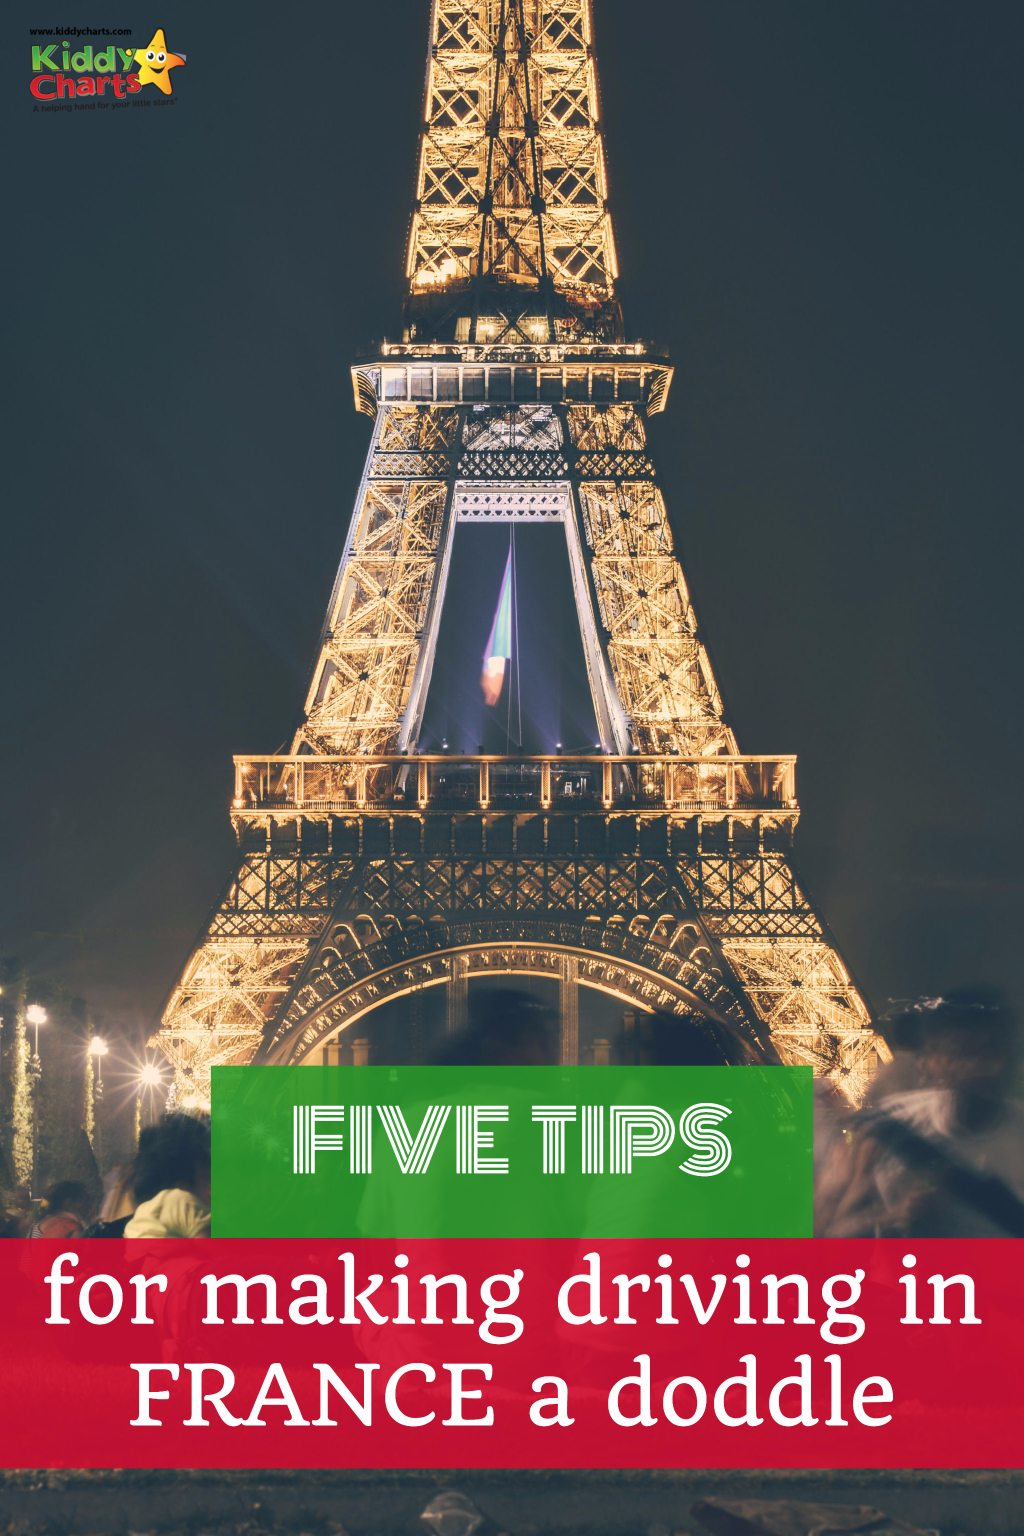 We've got some amazing tips for you to help make driving in France a doddle with the kids - first of all, don't be proud, get a portable DvD player!